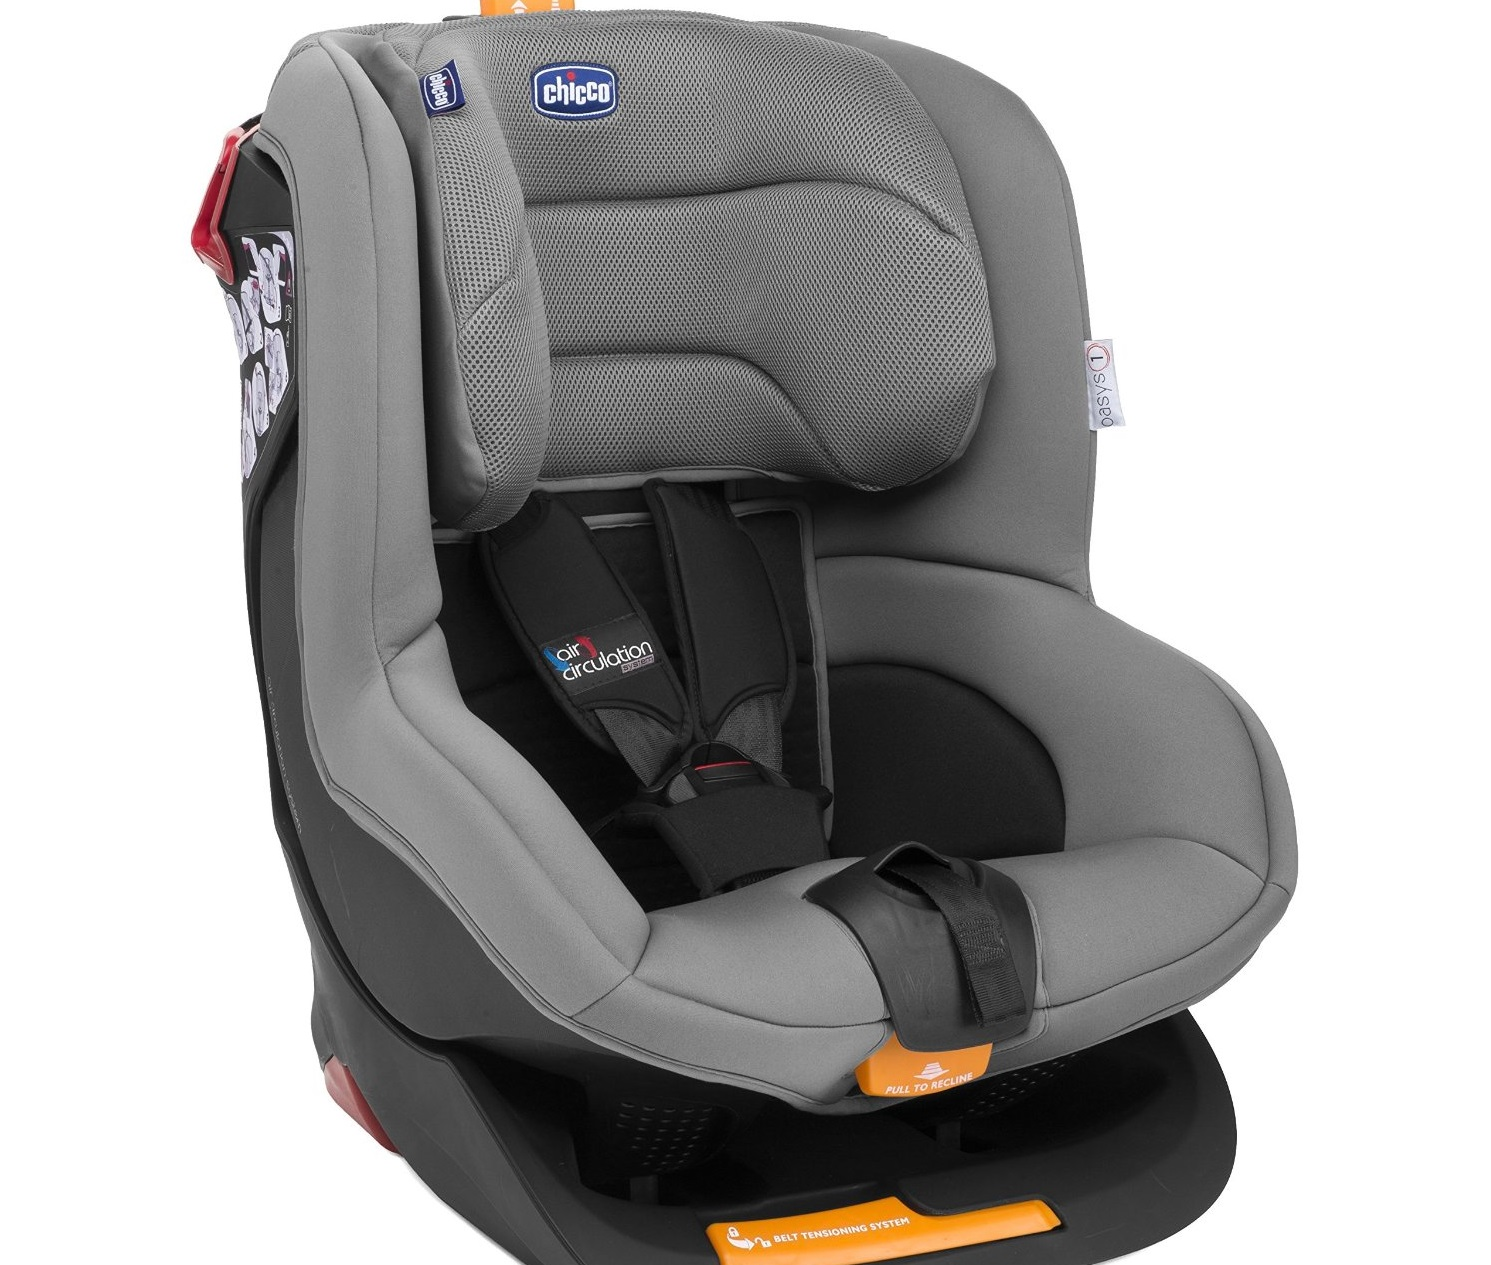 bons plans poussette britax si ge auto chicco sac langer beaba. Black Bedroom Furniture Sets. Home Design Ideas